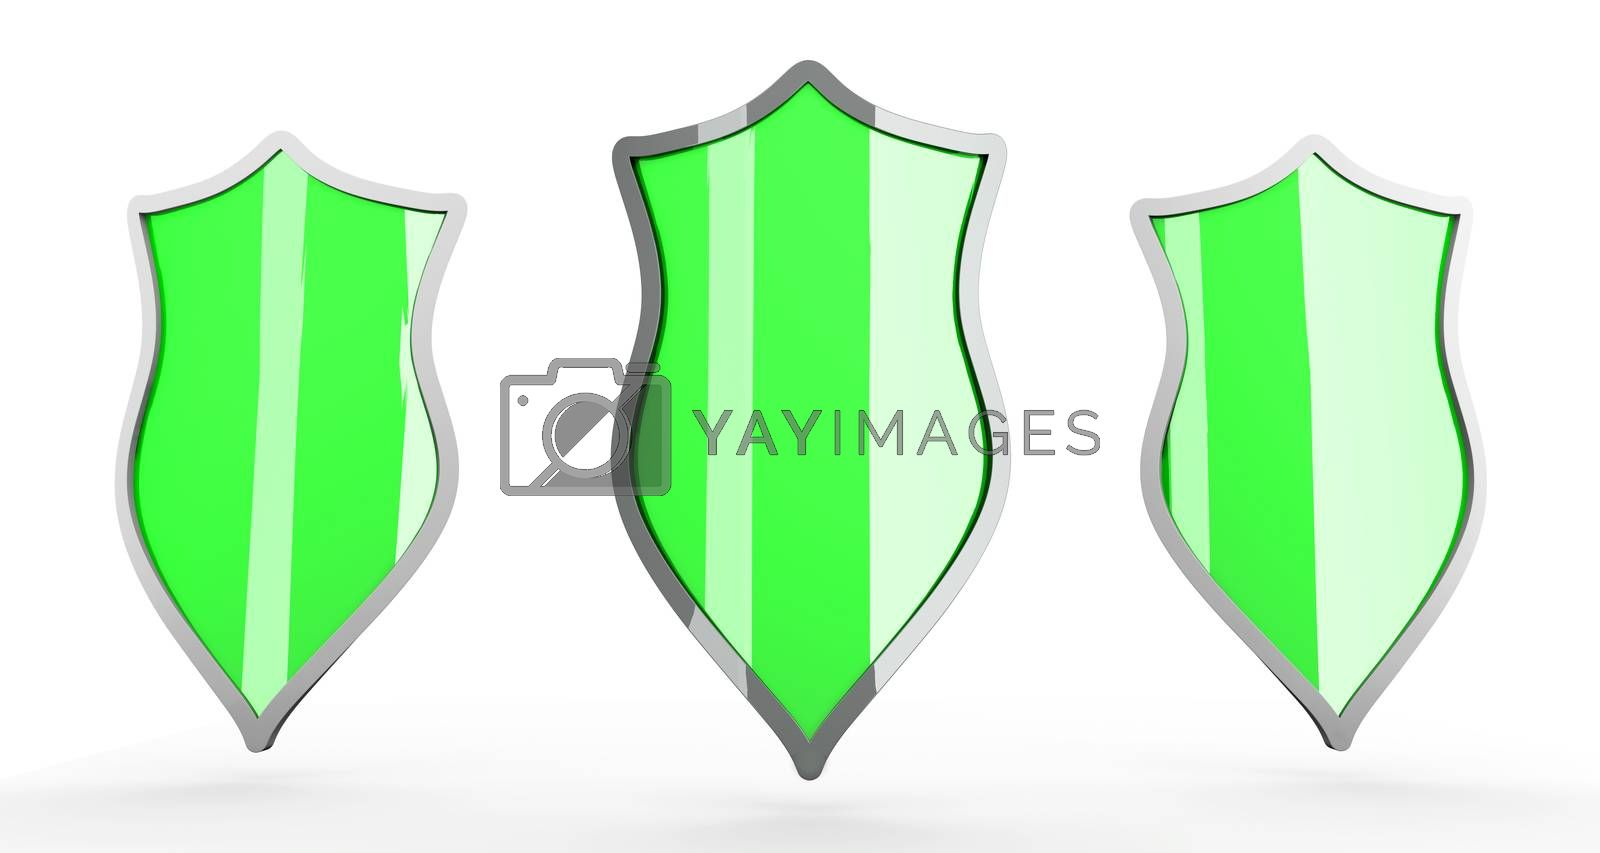 Three Shields for protection. 3D rendered Illustration. Isolated on white.